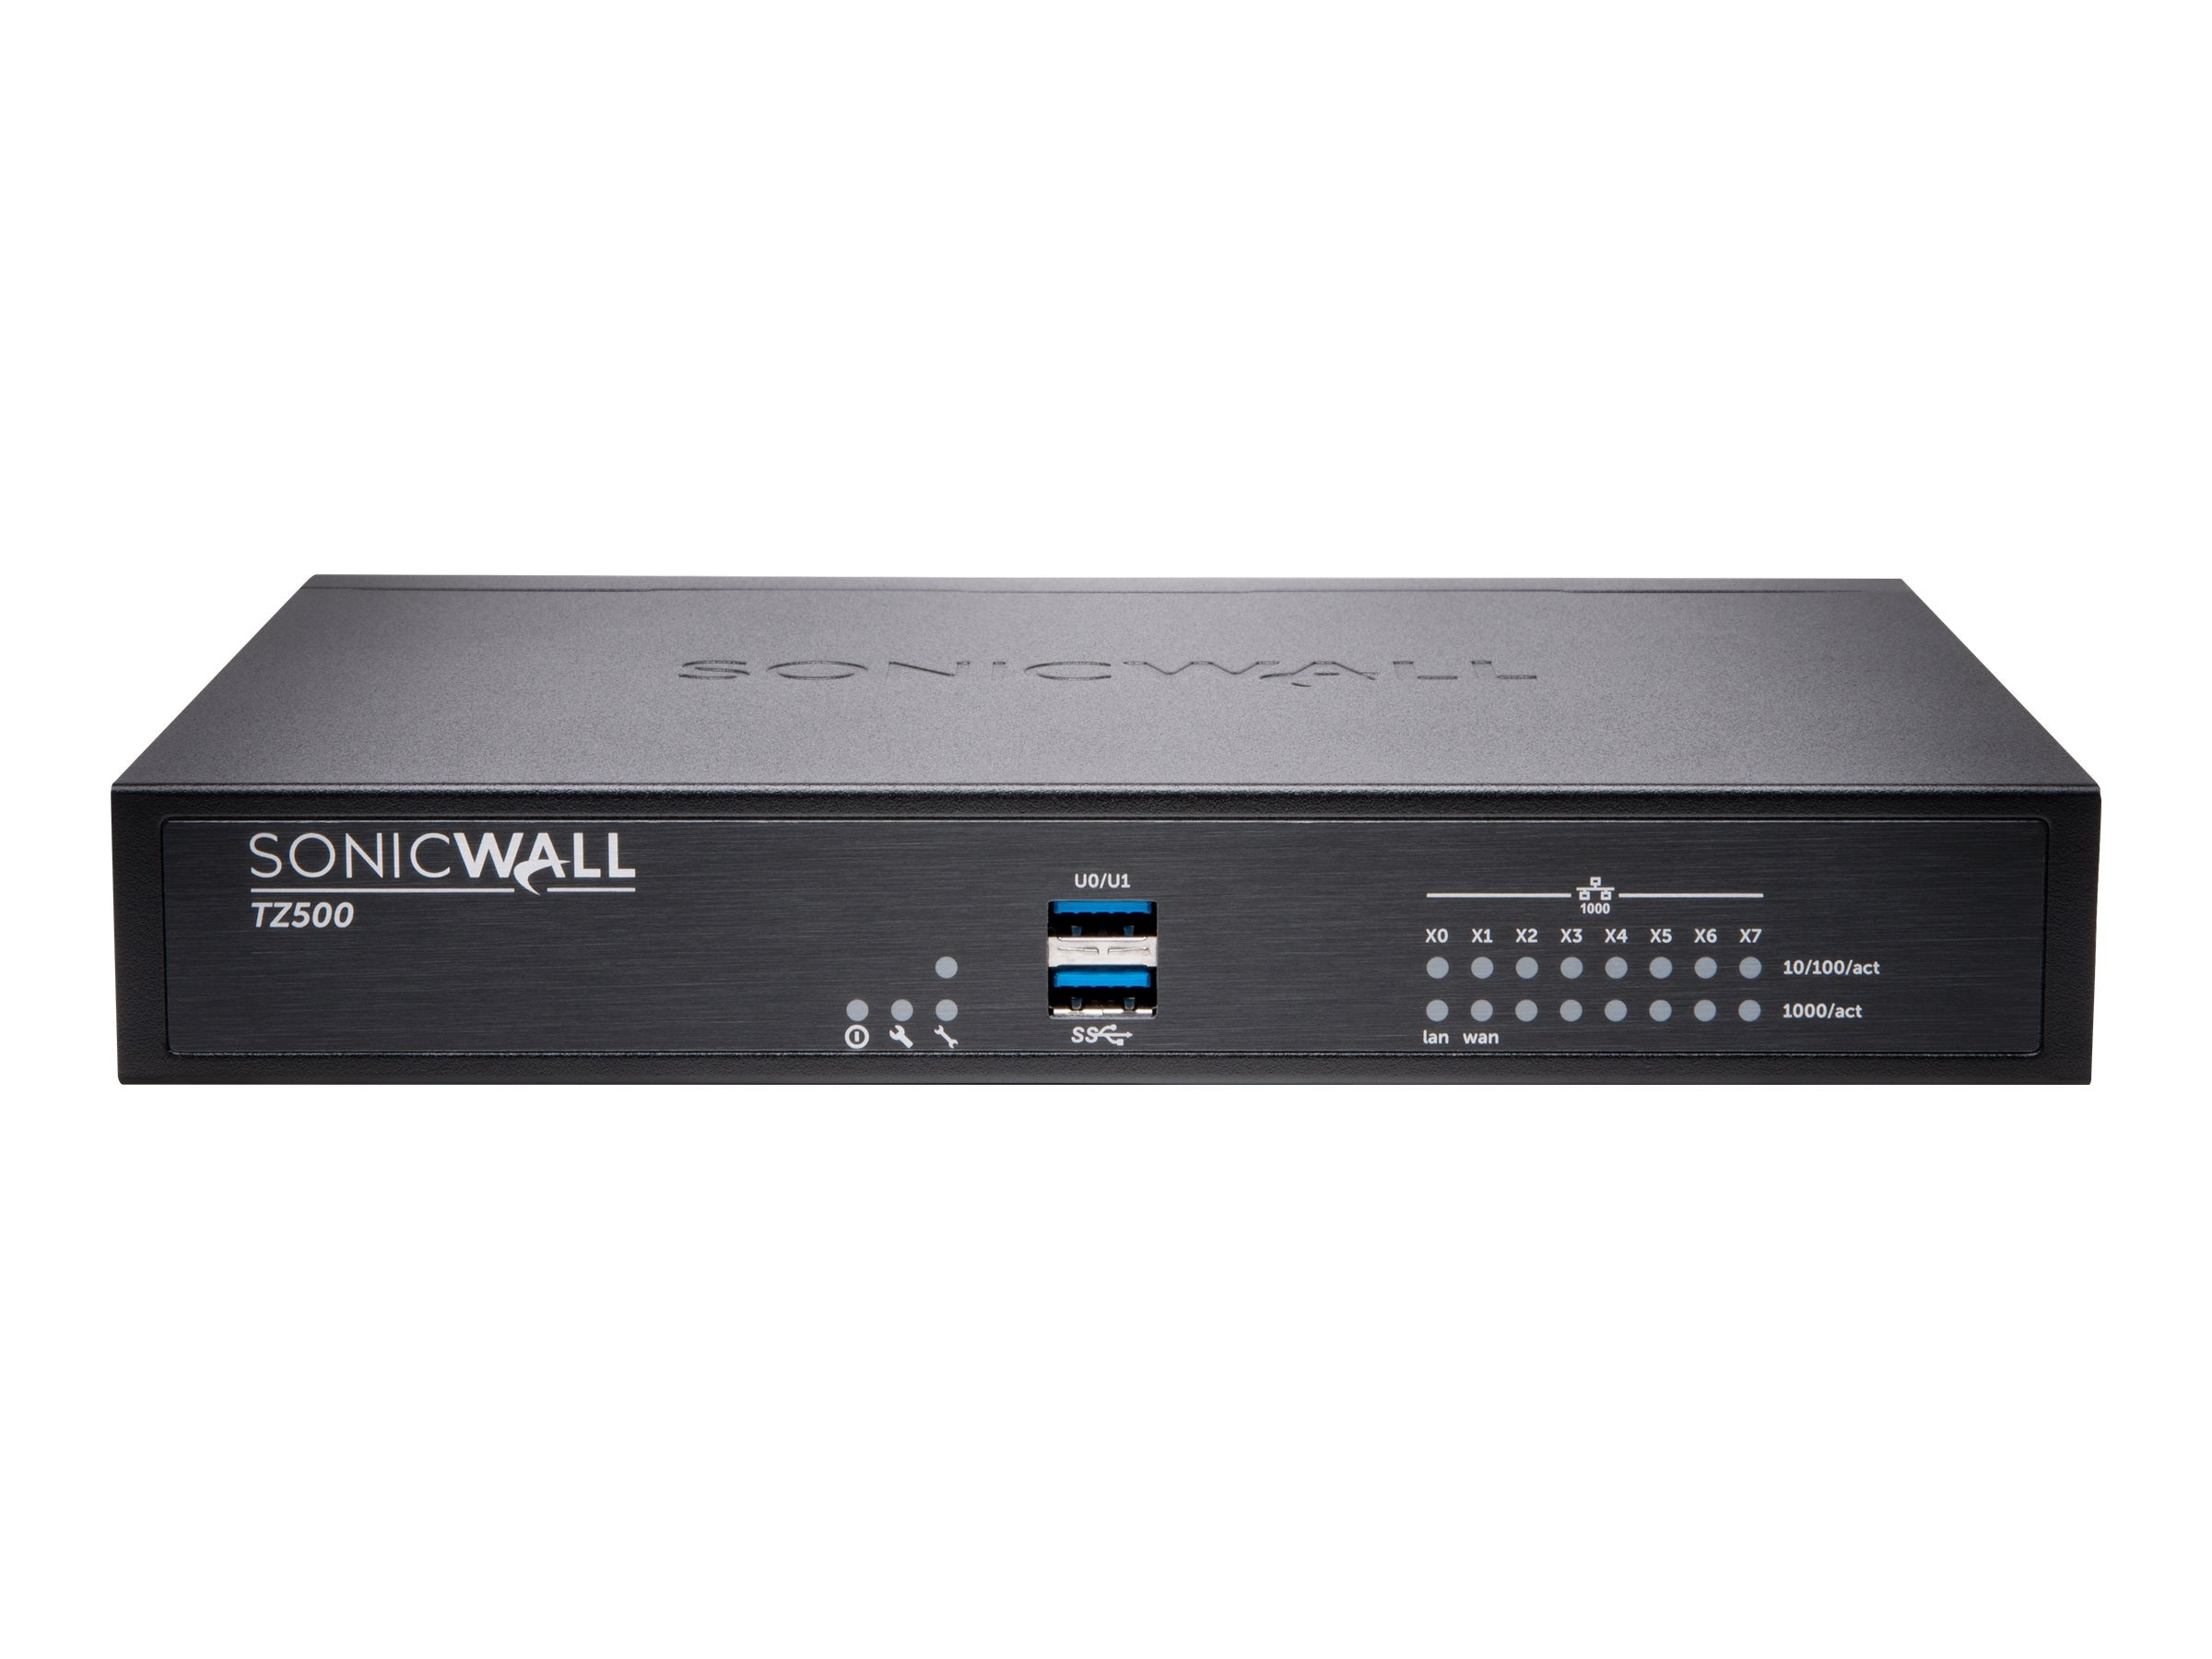 SonicWALL 01-SSC-1711 Image 2